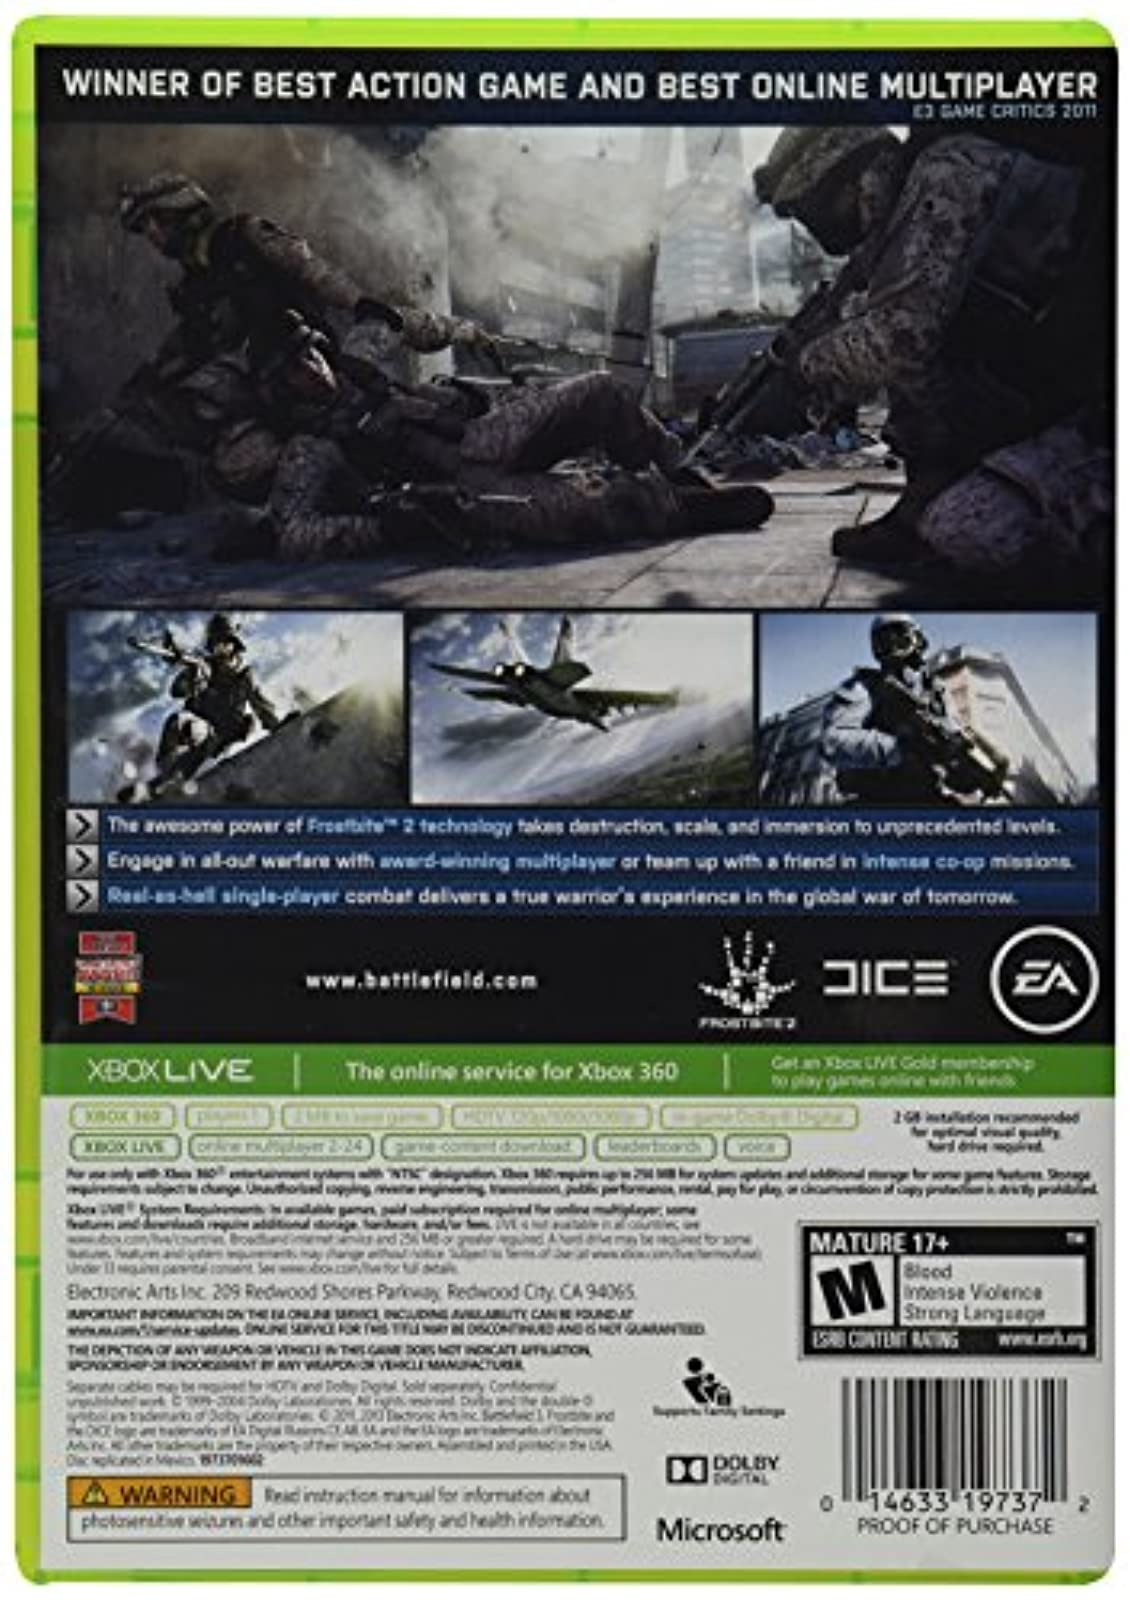 Image 2 of Battlefield 3 For Xbox 360 Shooter